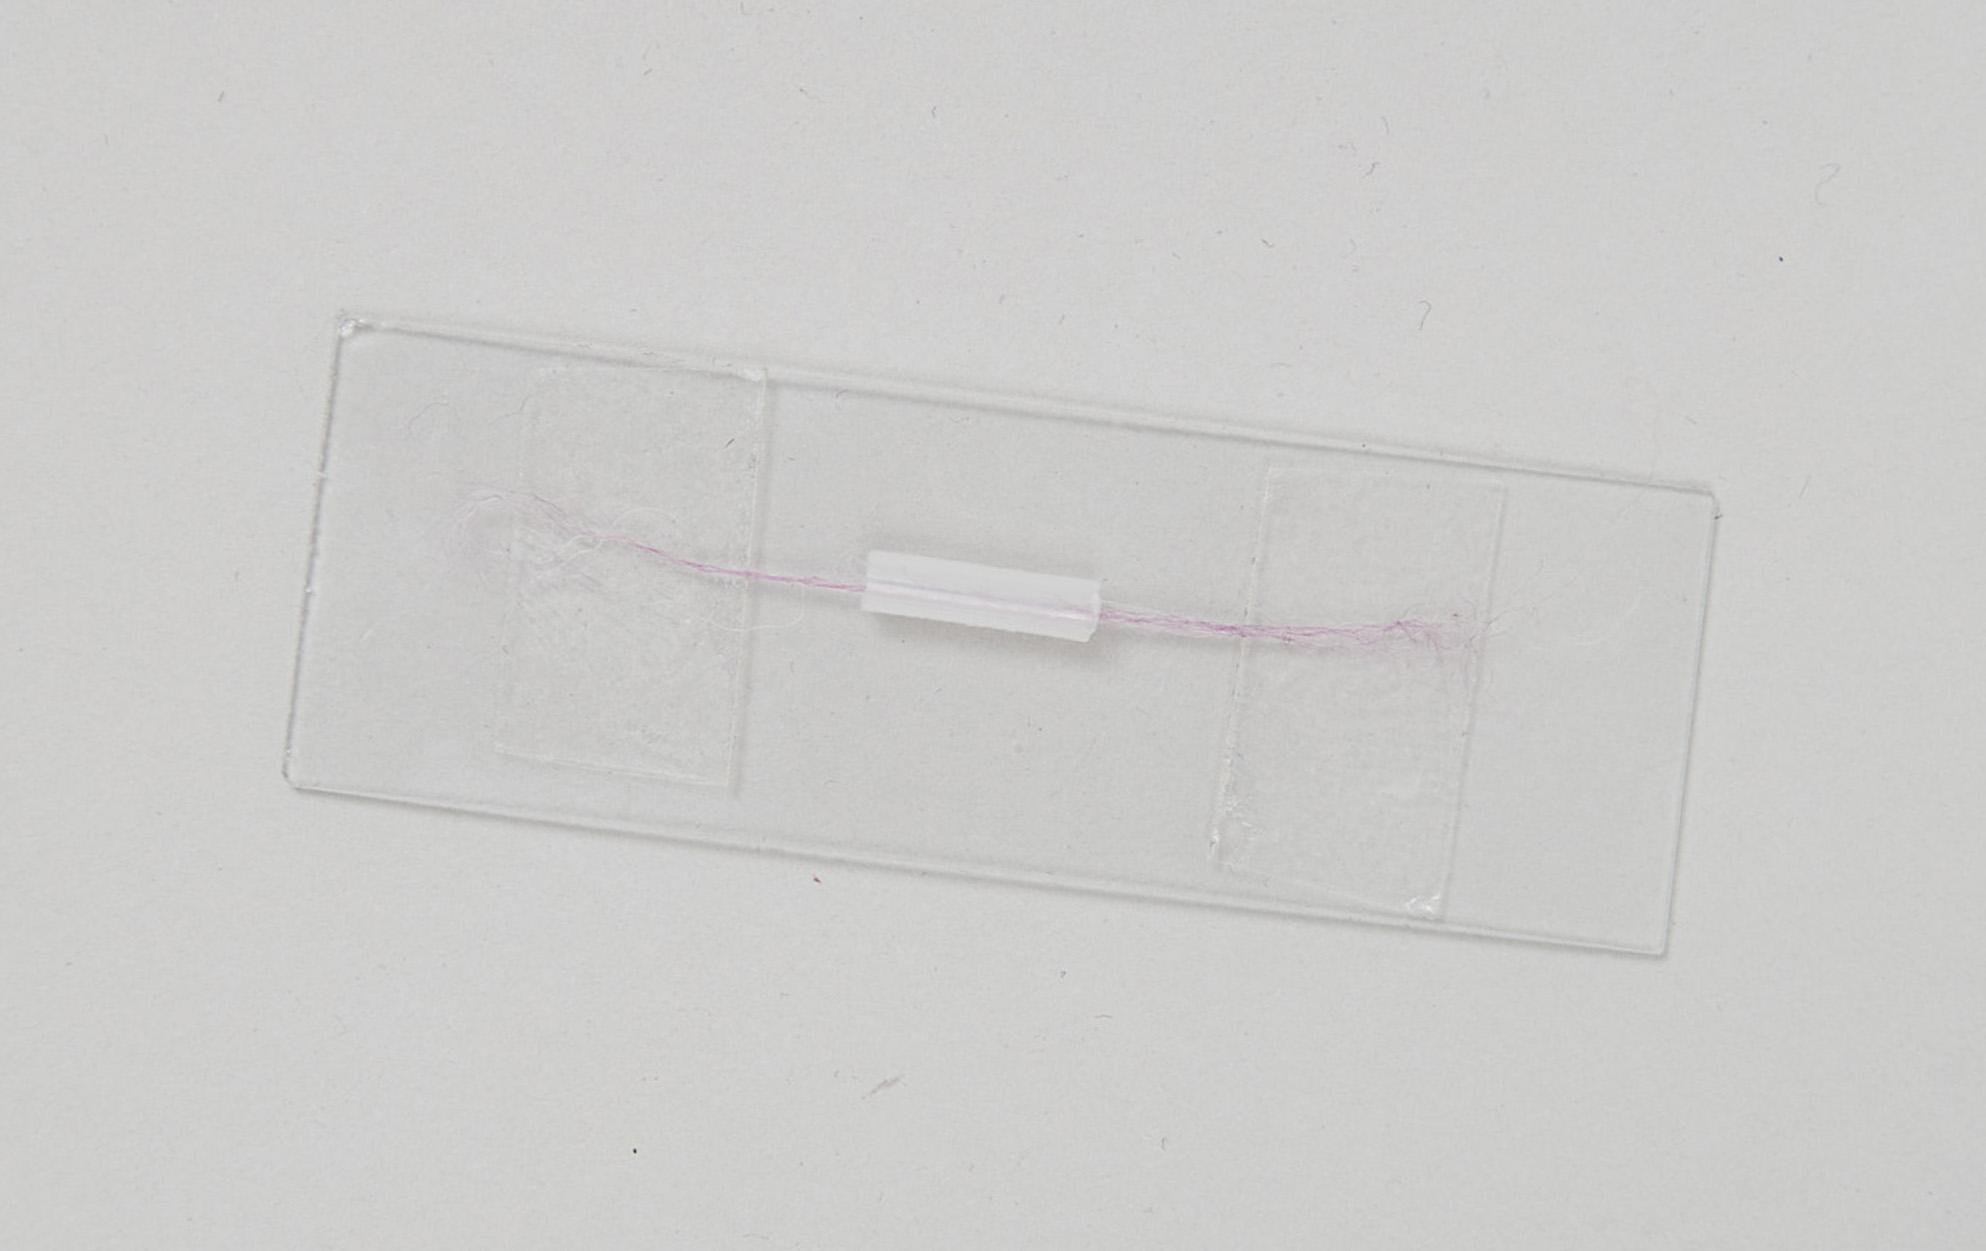 Fiber mounted on microscope slide.  The fiber is threaded though the section of transfer pipette and held taut with double-sided tape at either end.